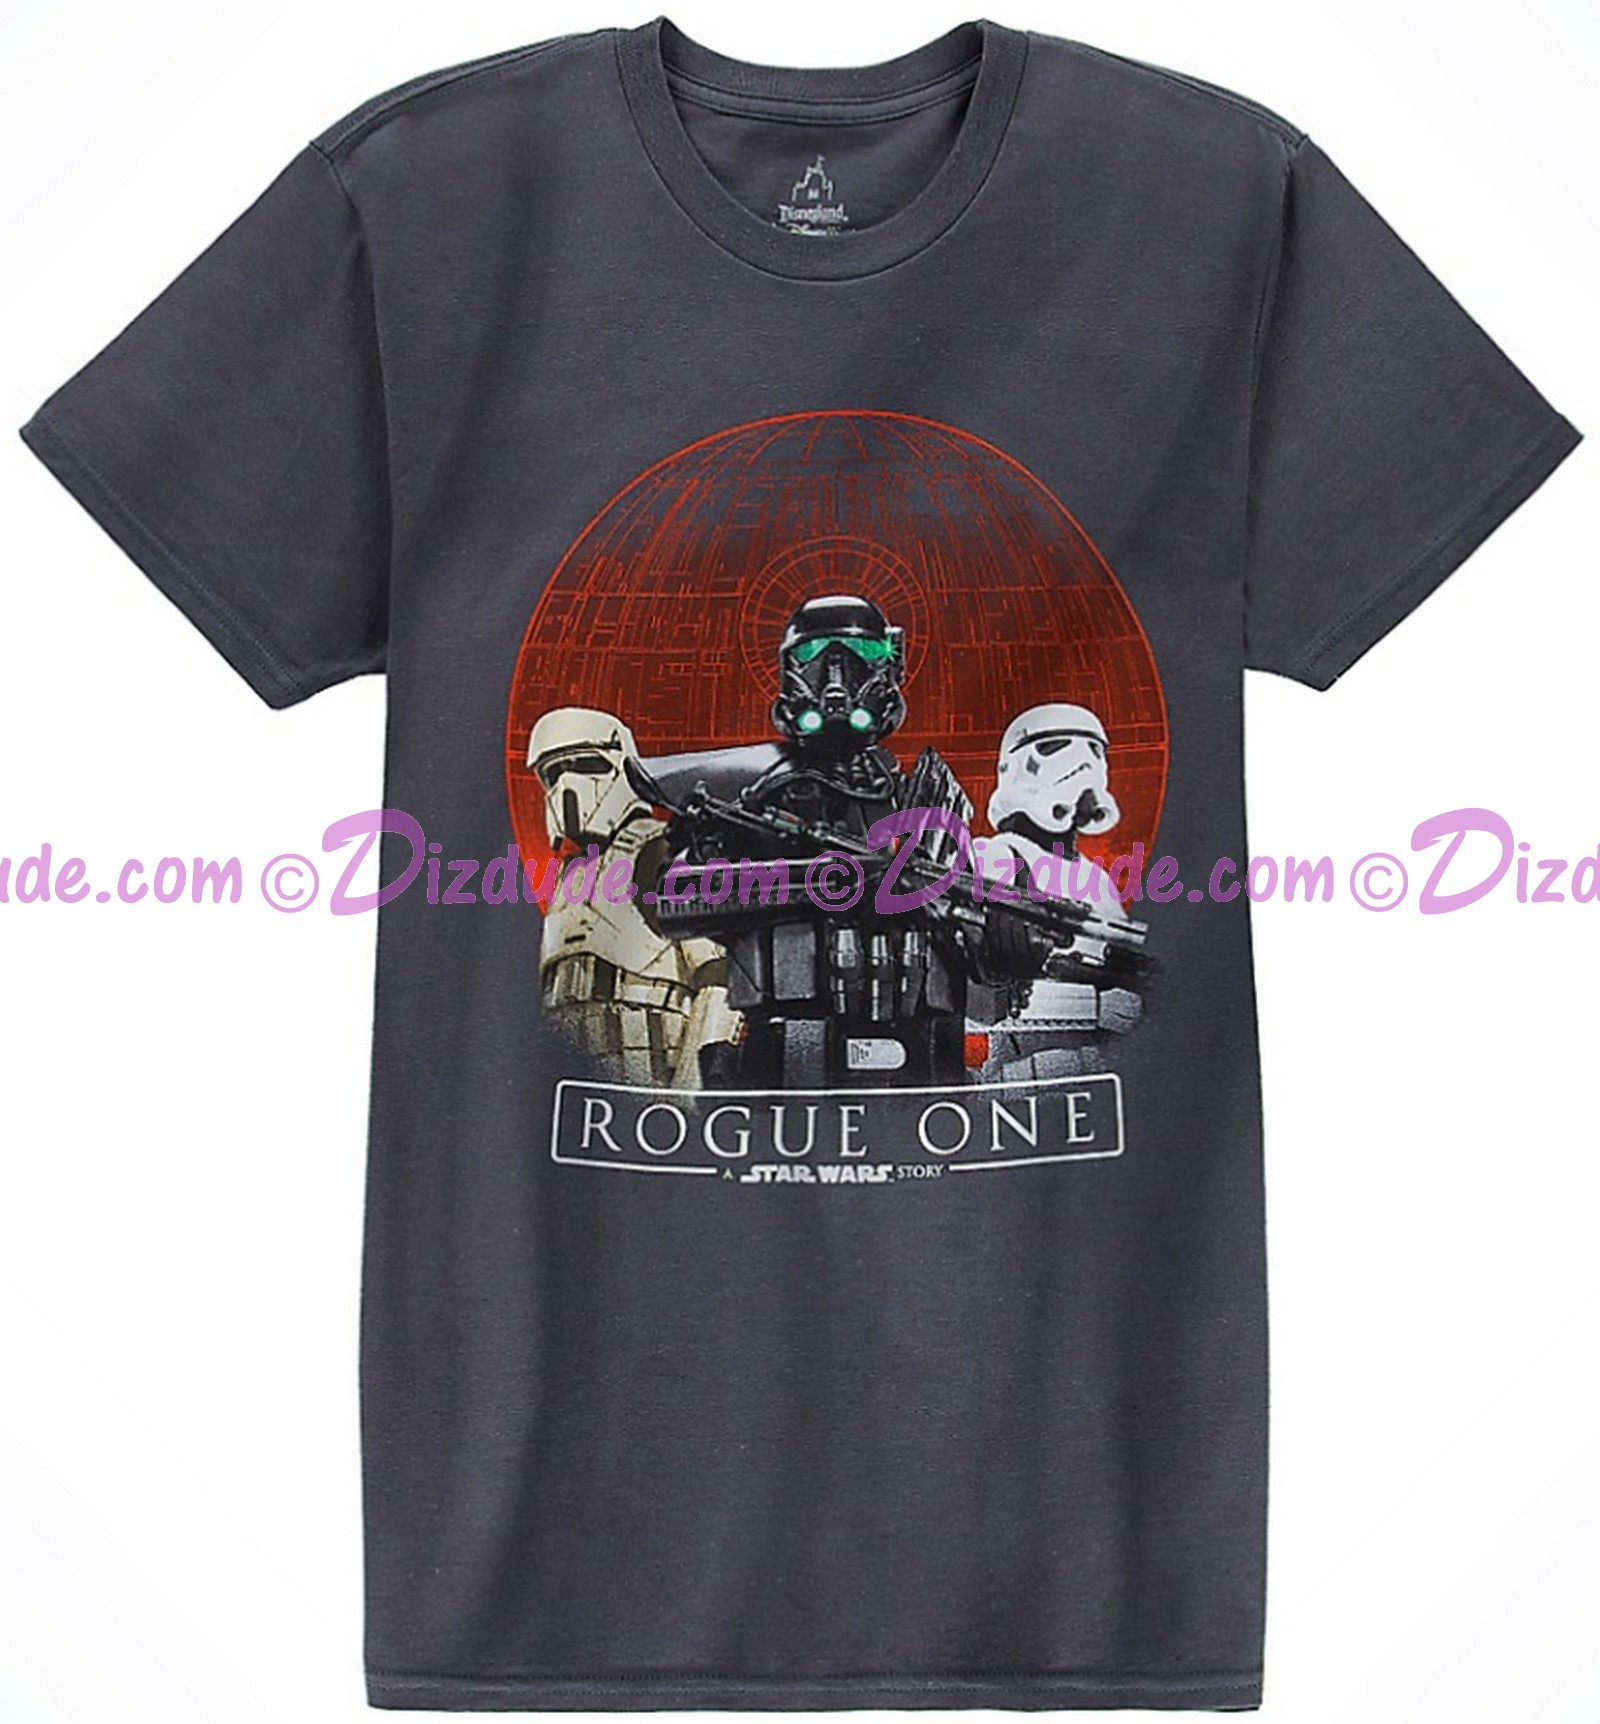 Rogue One Empire Adult T-Shirt (Tshirt, T shirt or Tee) - Disney's Star Wars